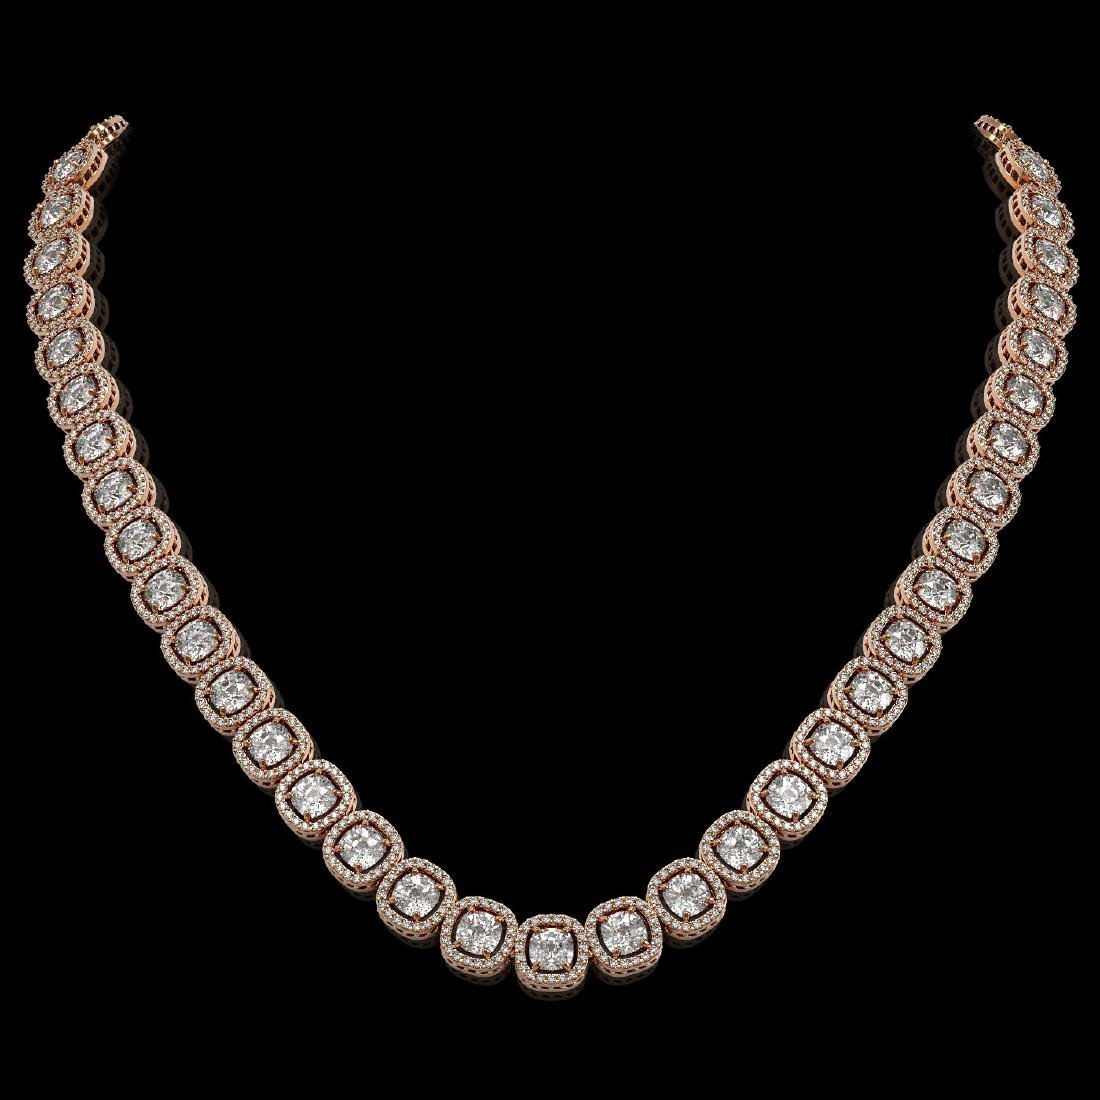 32.64 CTW Cushion Diamond Designer Necklace 18K Rose